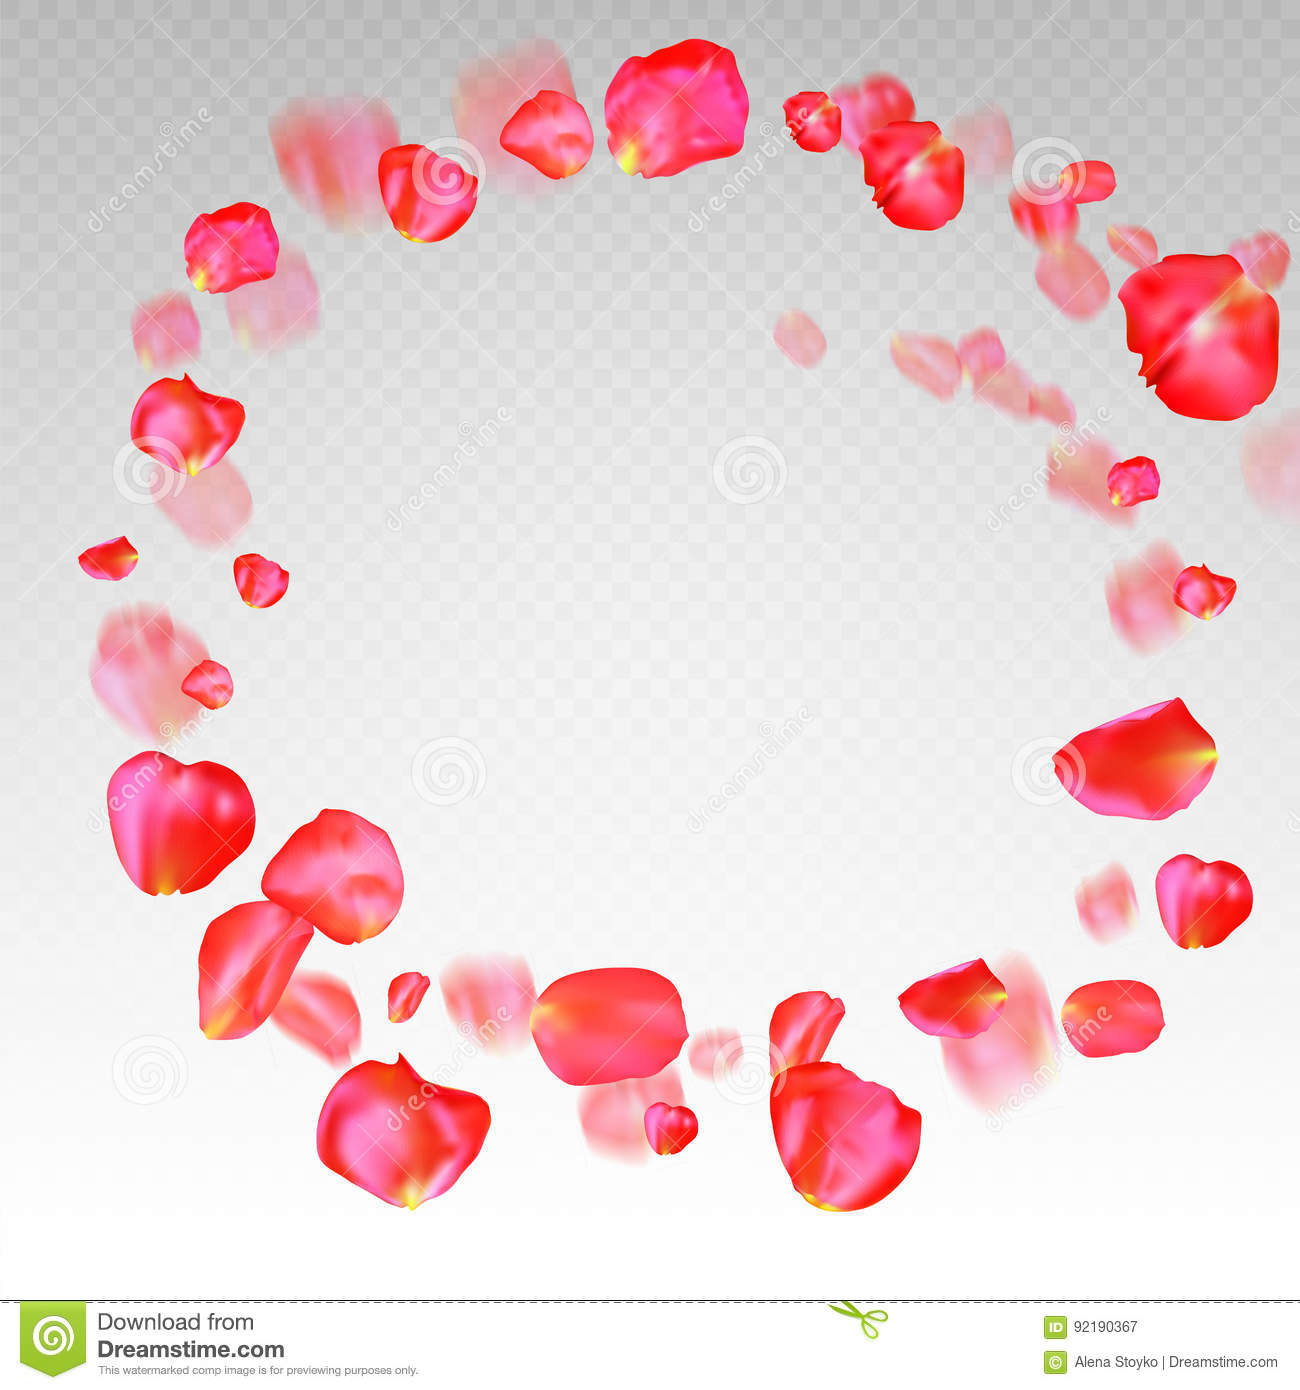 A Lot Of Falling Red Rose Petals On Transparent Background Stock